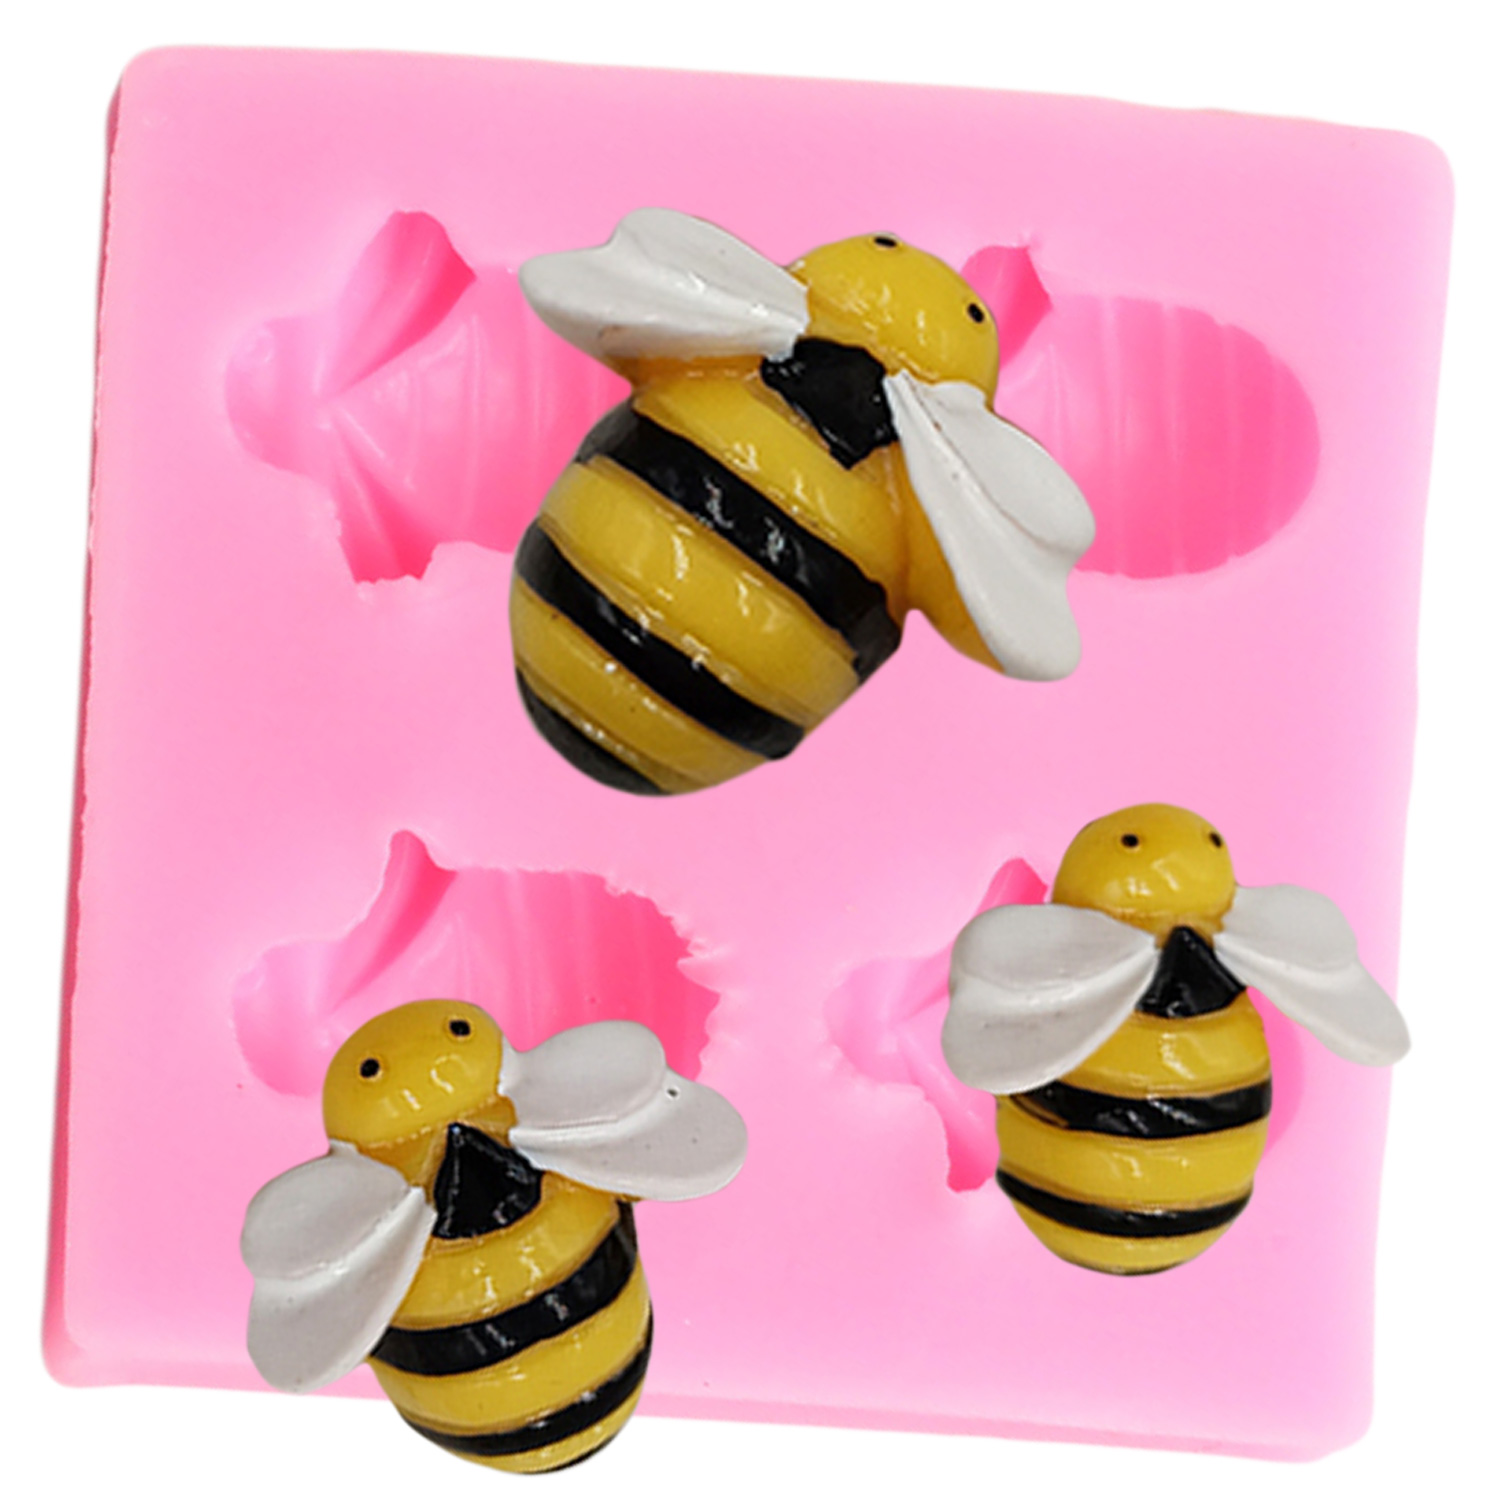 Little Bee <font><b>Fondant</b></font> Silicone Mold DIY <font><b>Cake</b></font> <font><b>Decorating</b></font> <font><b>Tools</b></font> Chocolate Candy Gumpaste Mould <font><b>Cake</b></font> Baking Sugar Craft <font><b>Tool</b></font> image